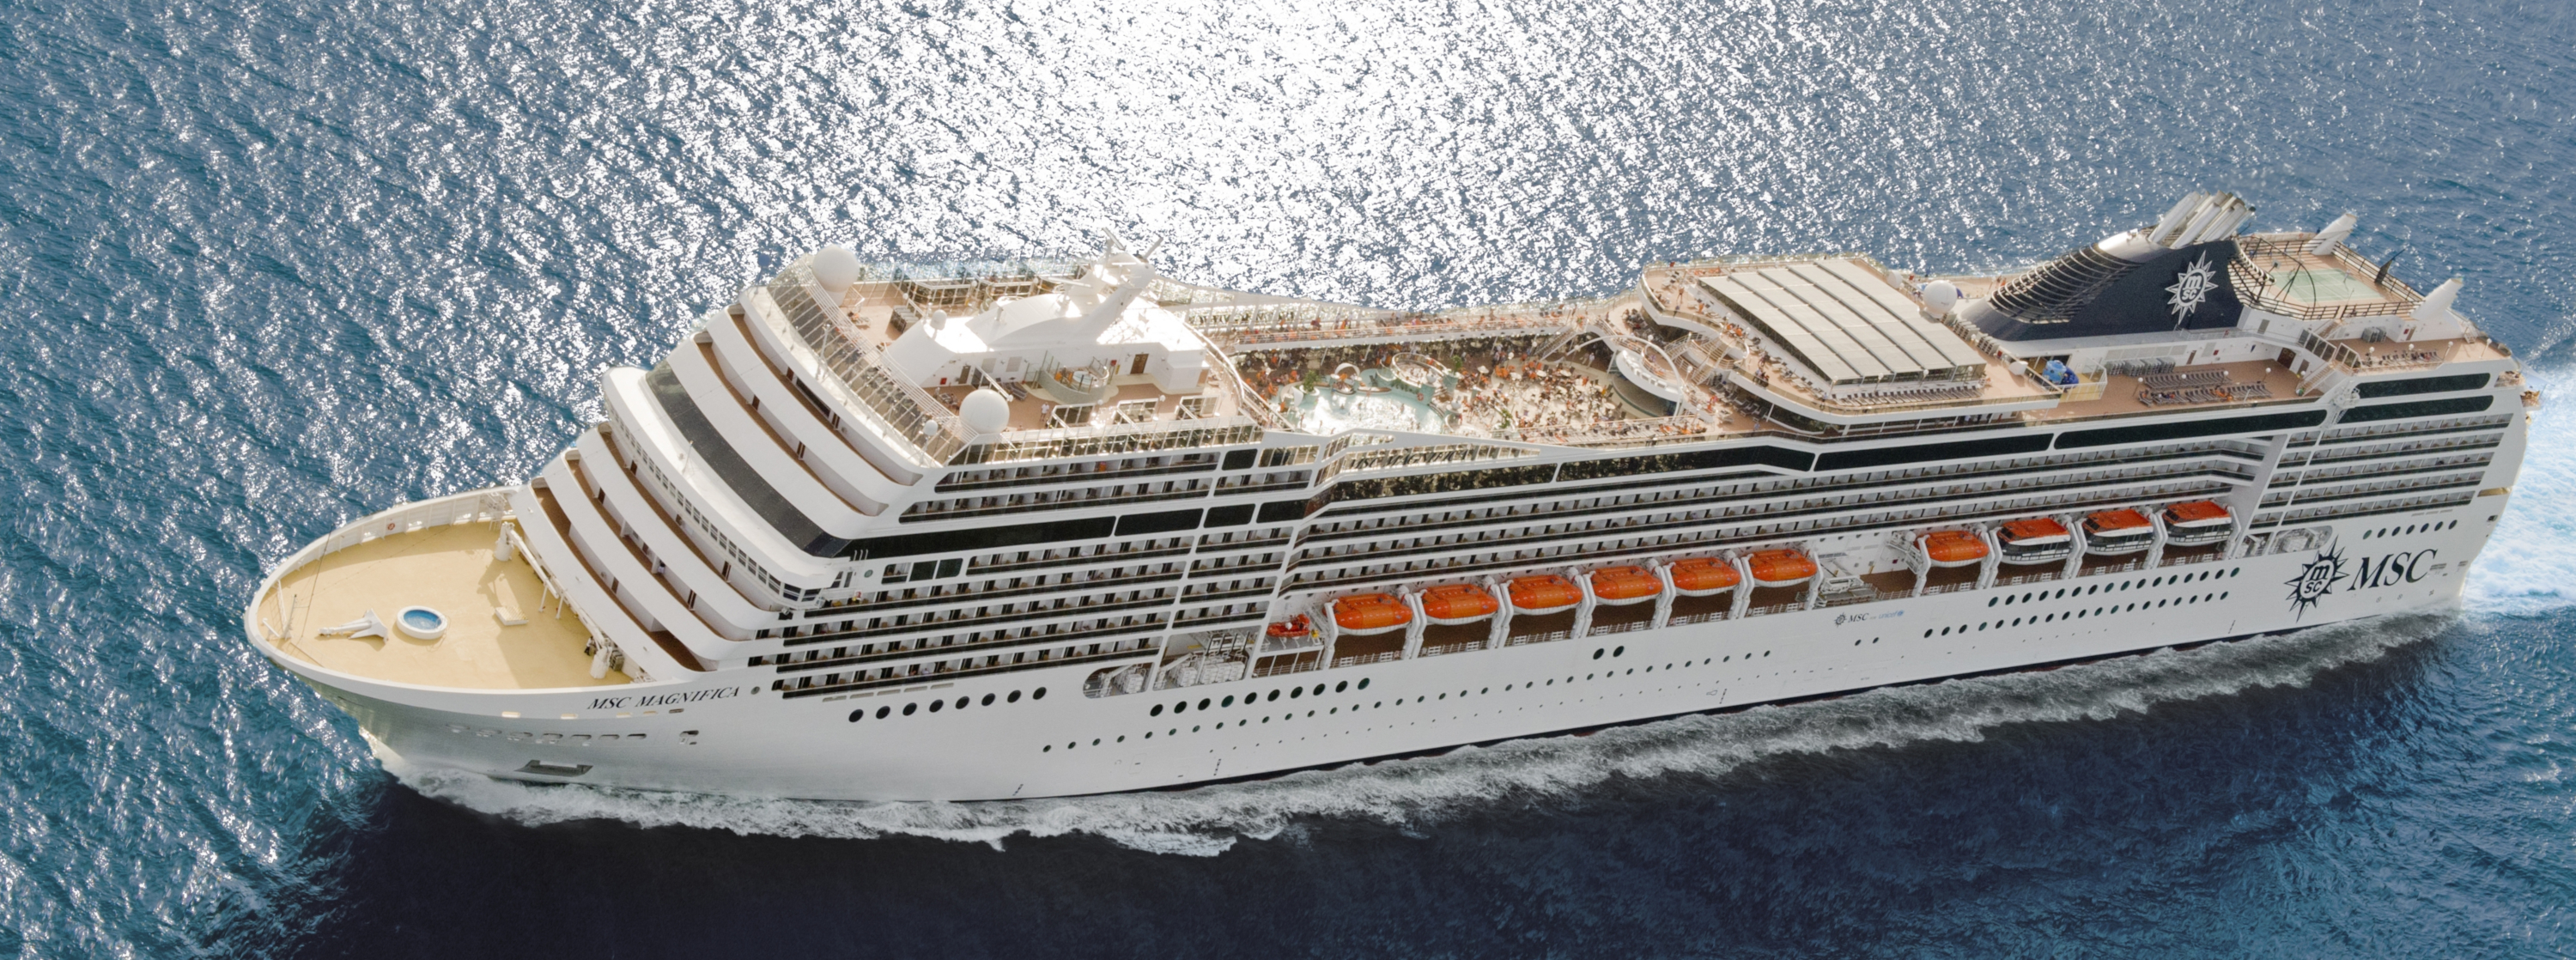 Eastern Meditteranean Cruise  on MSC Magnifica